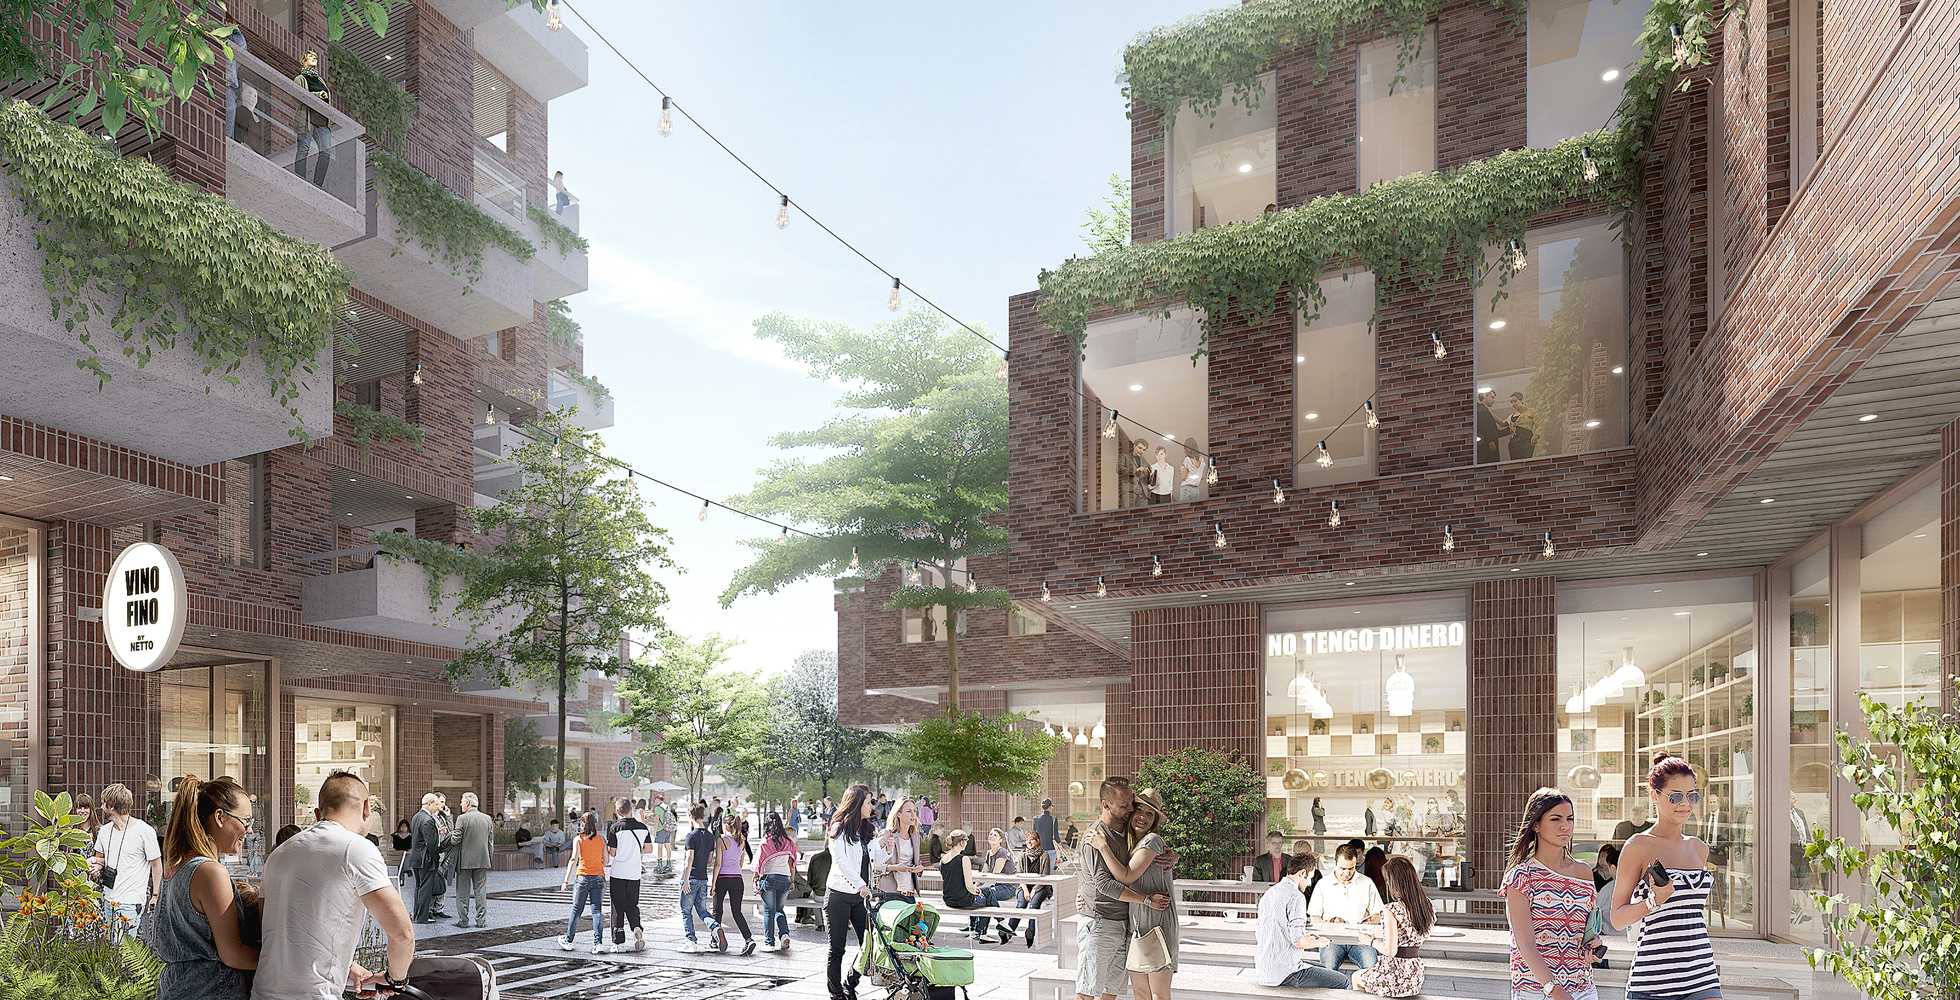 aart to revitalize aarhus port district with terraced mixed use complex